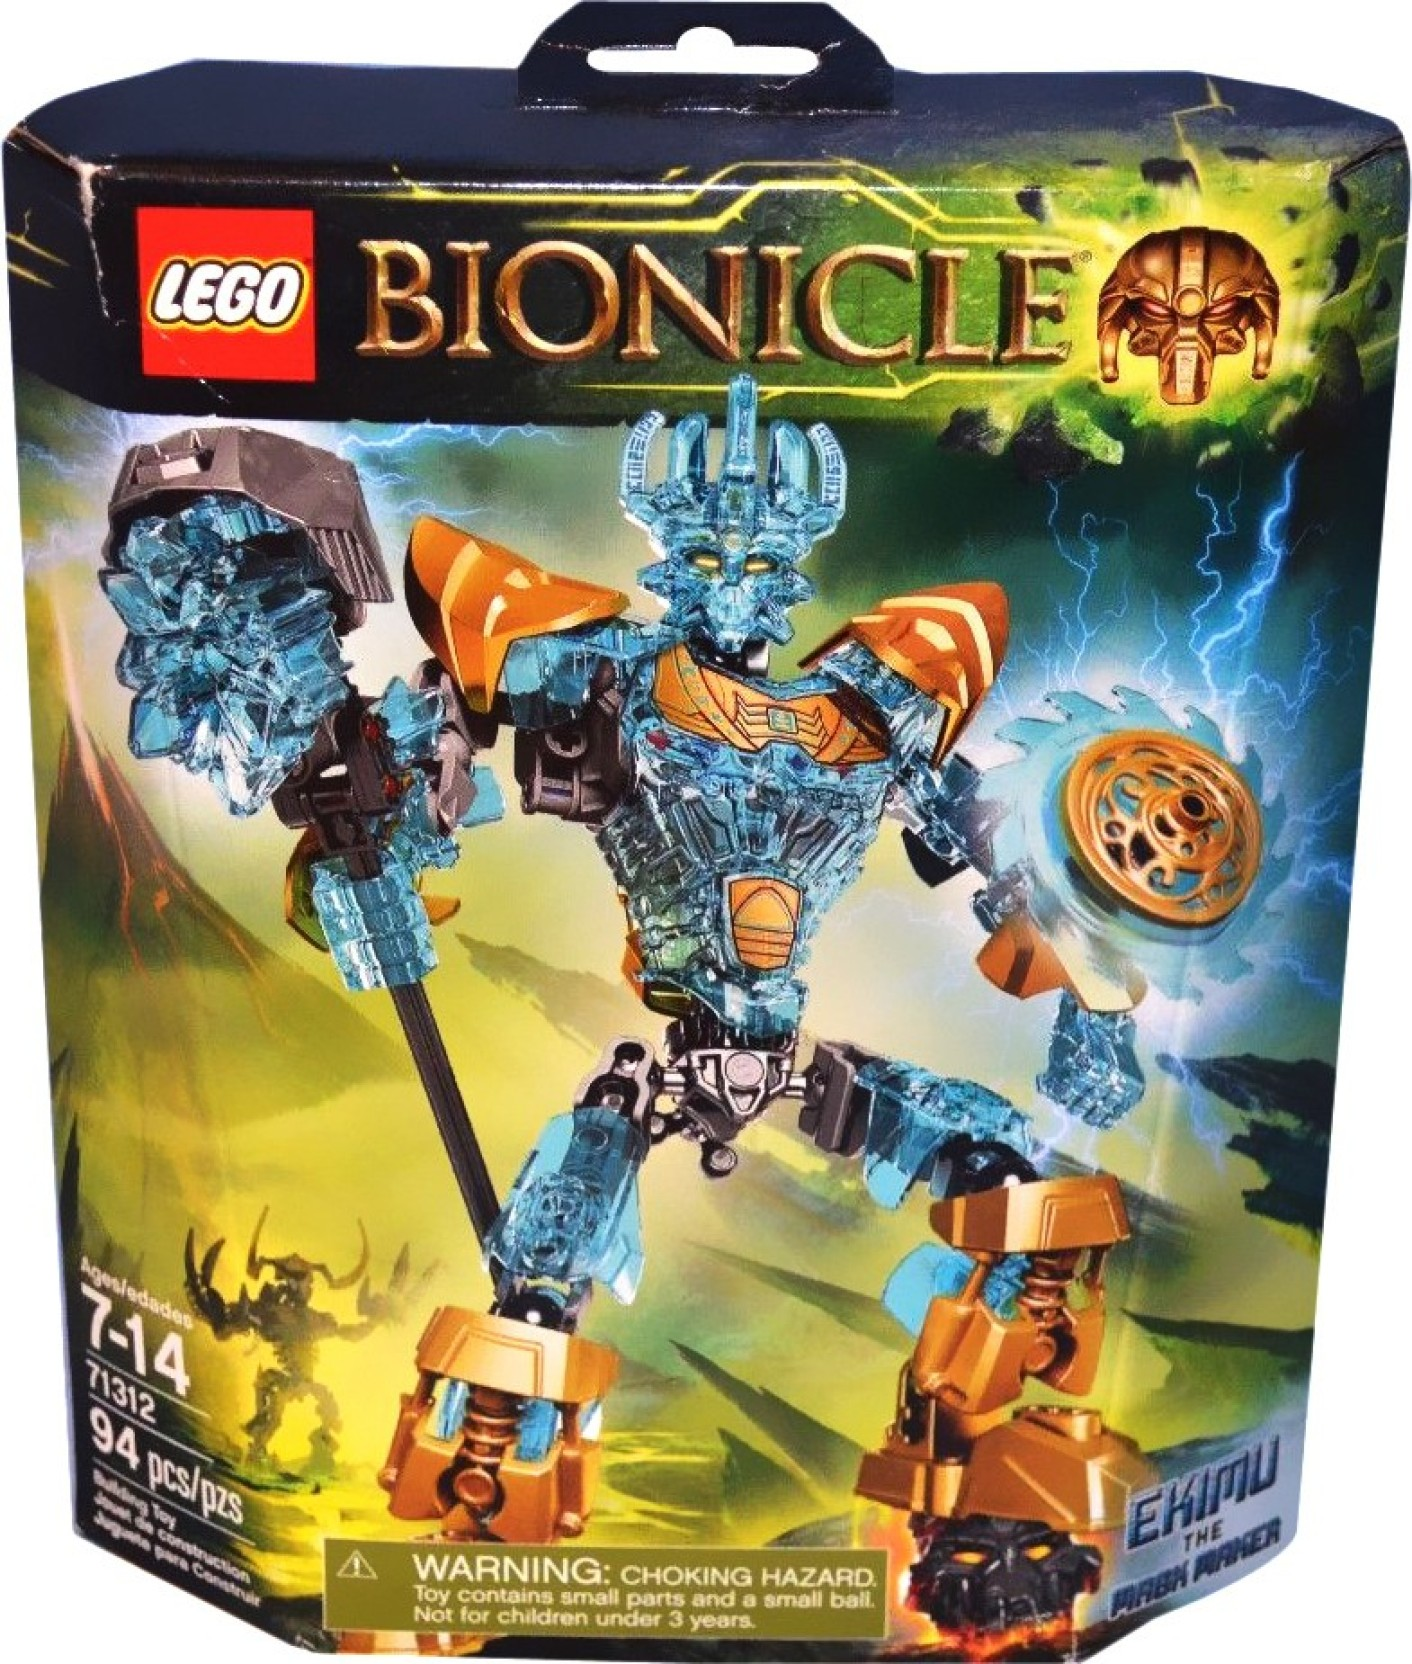 Lego Bionicle Buy Ekimu The Mask Maker Toys In India 70605 Ninjago Misfortunes Keep Share